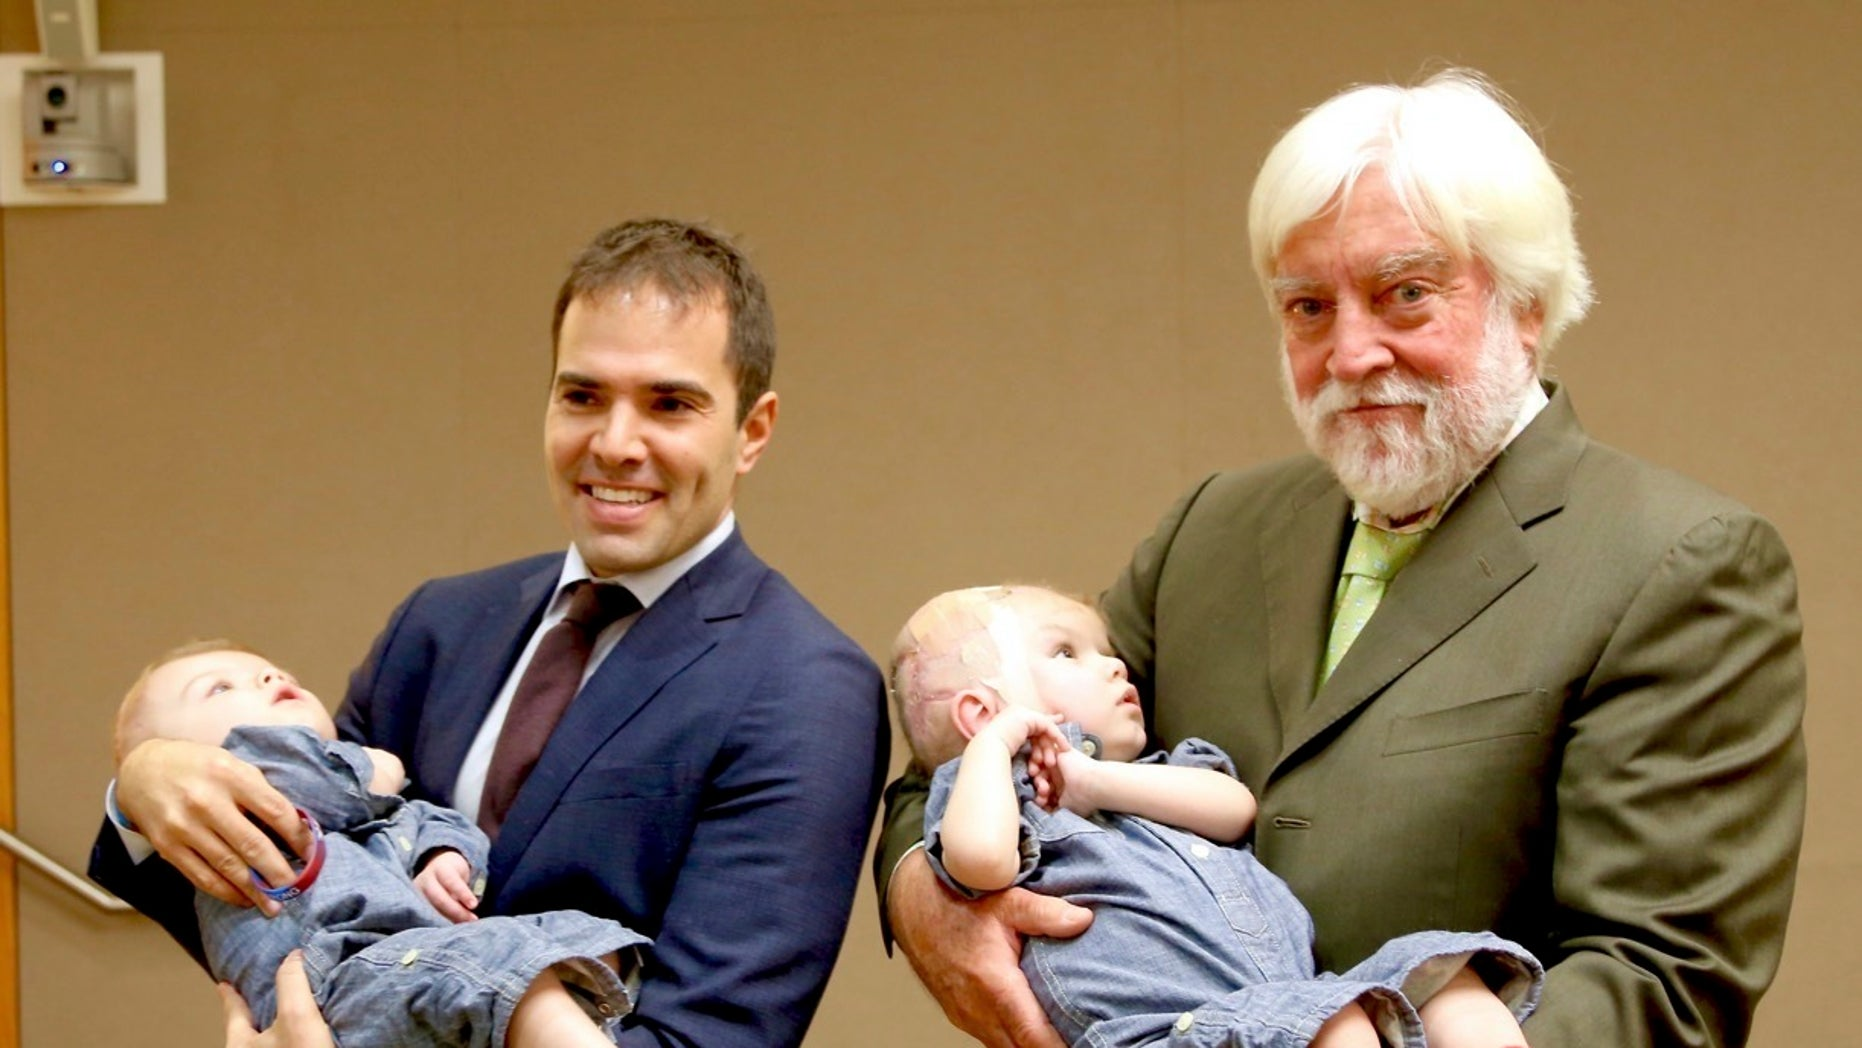 This photo provided by Montefiore Hospital shows, from left, Dr. Oren Tepper and  Dr.  James Goodrich holding a pair of formerly conjoined twins, Jadon, left and Anias in New York.  Jadon and Anias were separated in a 20-hour procedure at New York City's Montefiore Medical Center on Oct. 13 and 14, 2016. The hospital says they have been transferred to Blythedale Children's Hospital in suburban Westchester, where they will receive specialized rehabilitation care.  (Montefiore Hospital via AP)